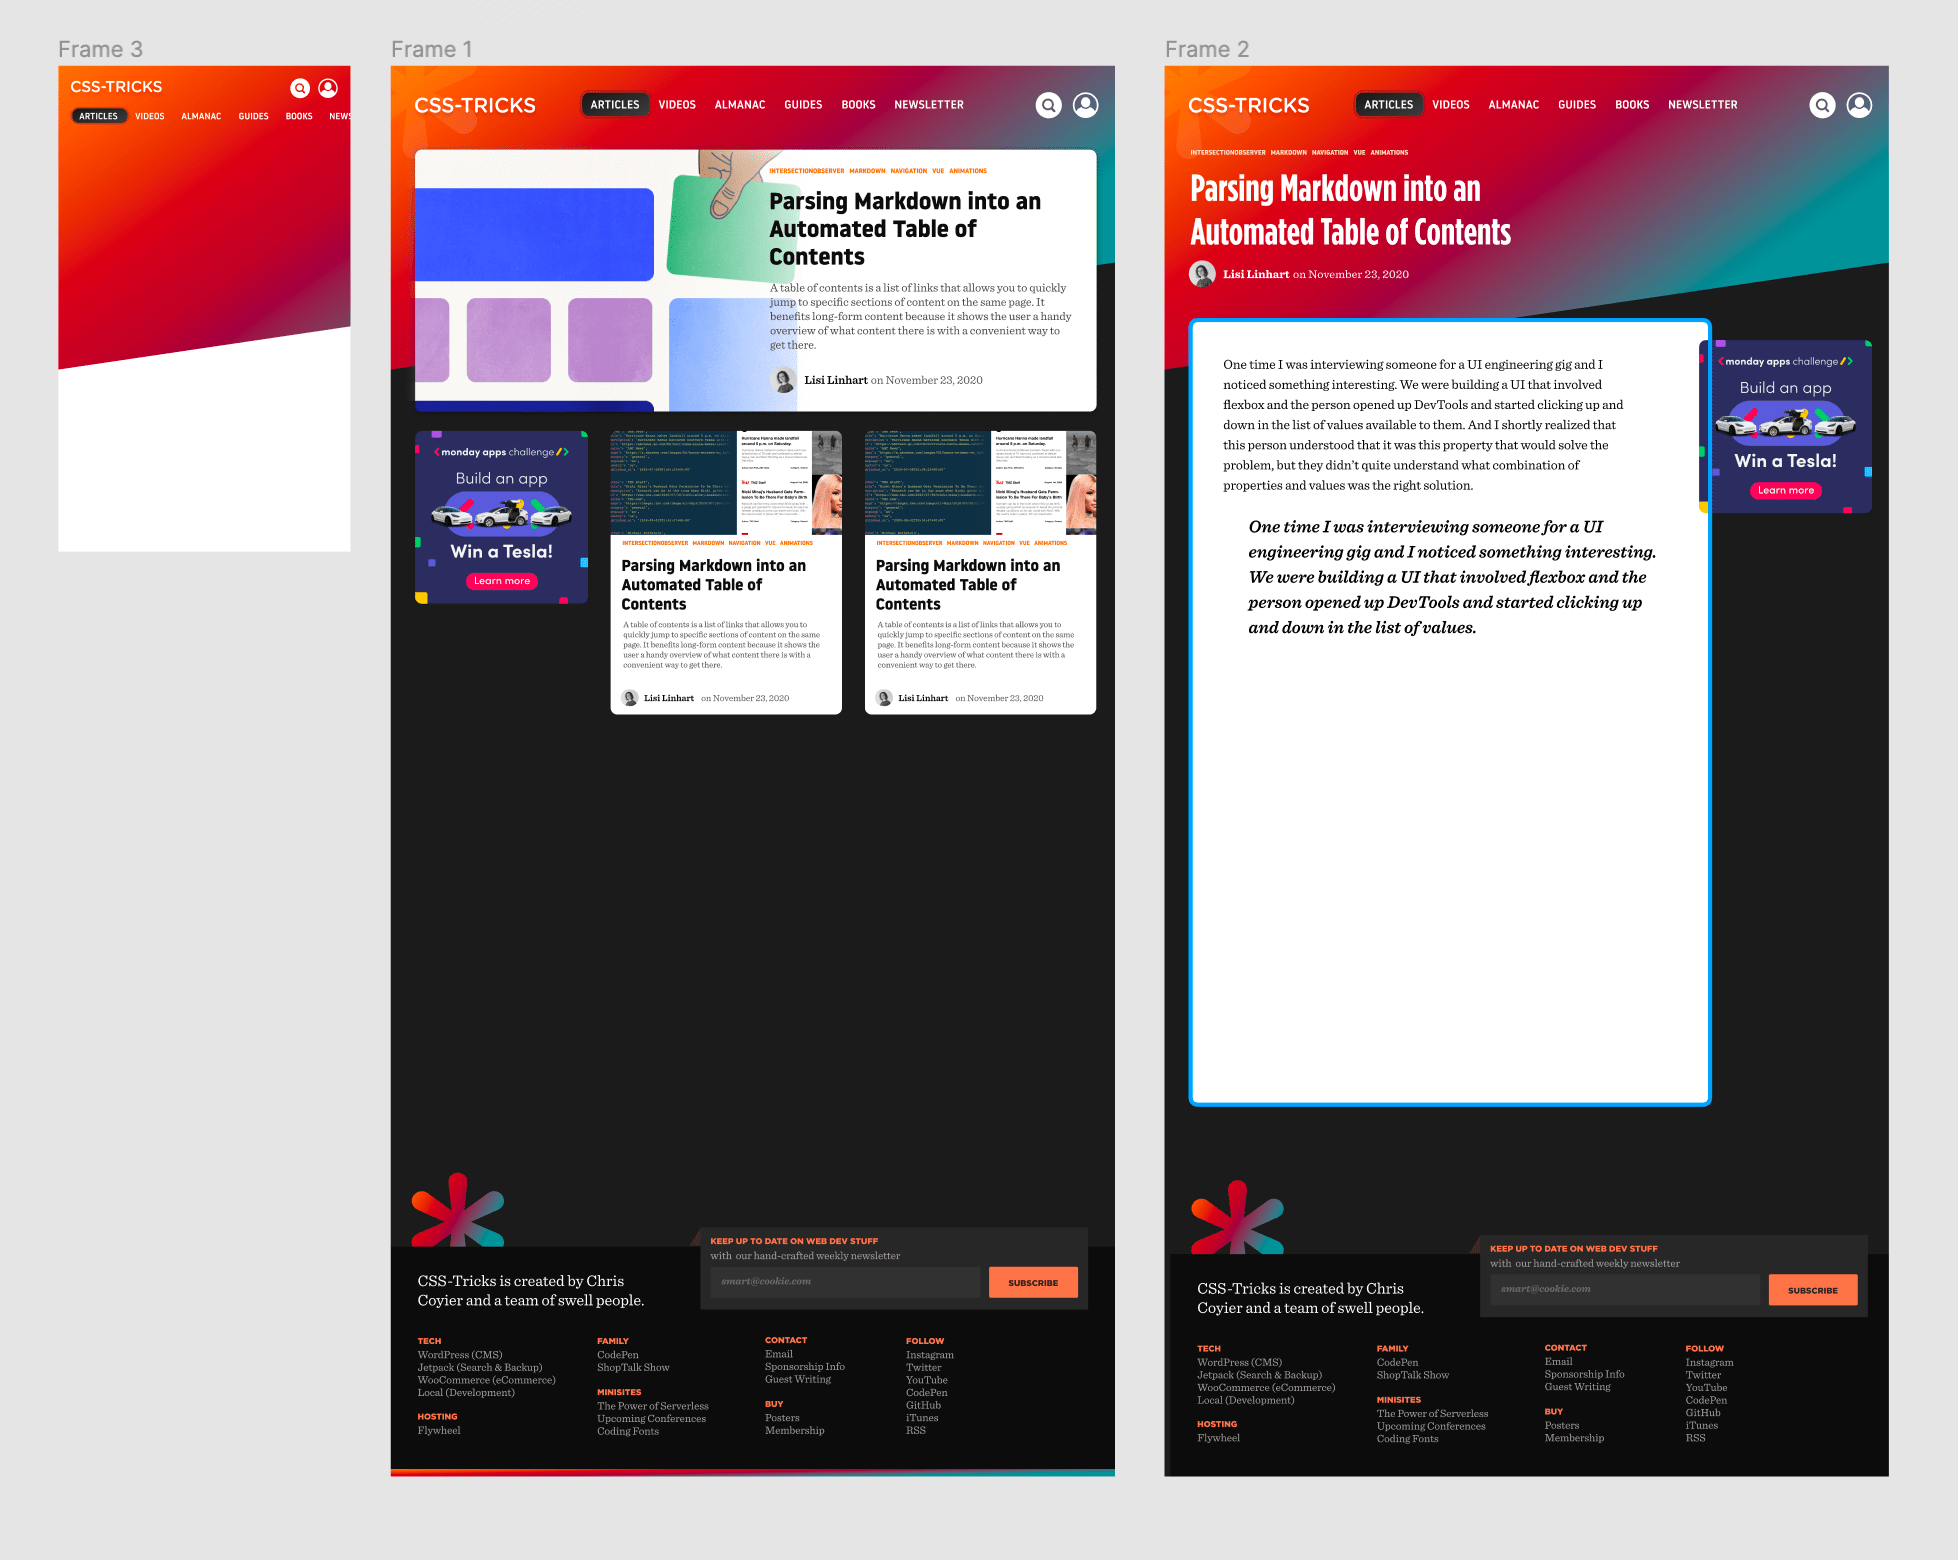 Screenshot from the redesign of CSS-Tricks showing incomplete high-fidelity designs in Figma.